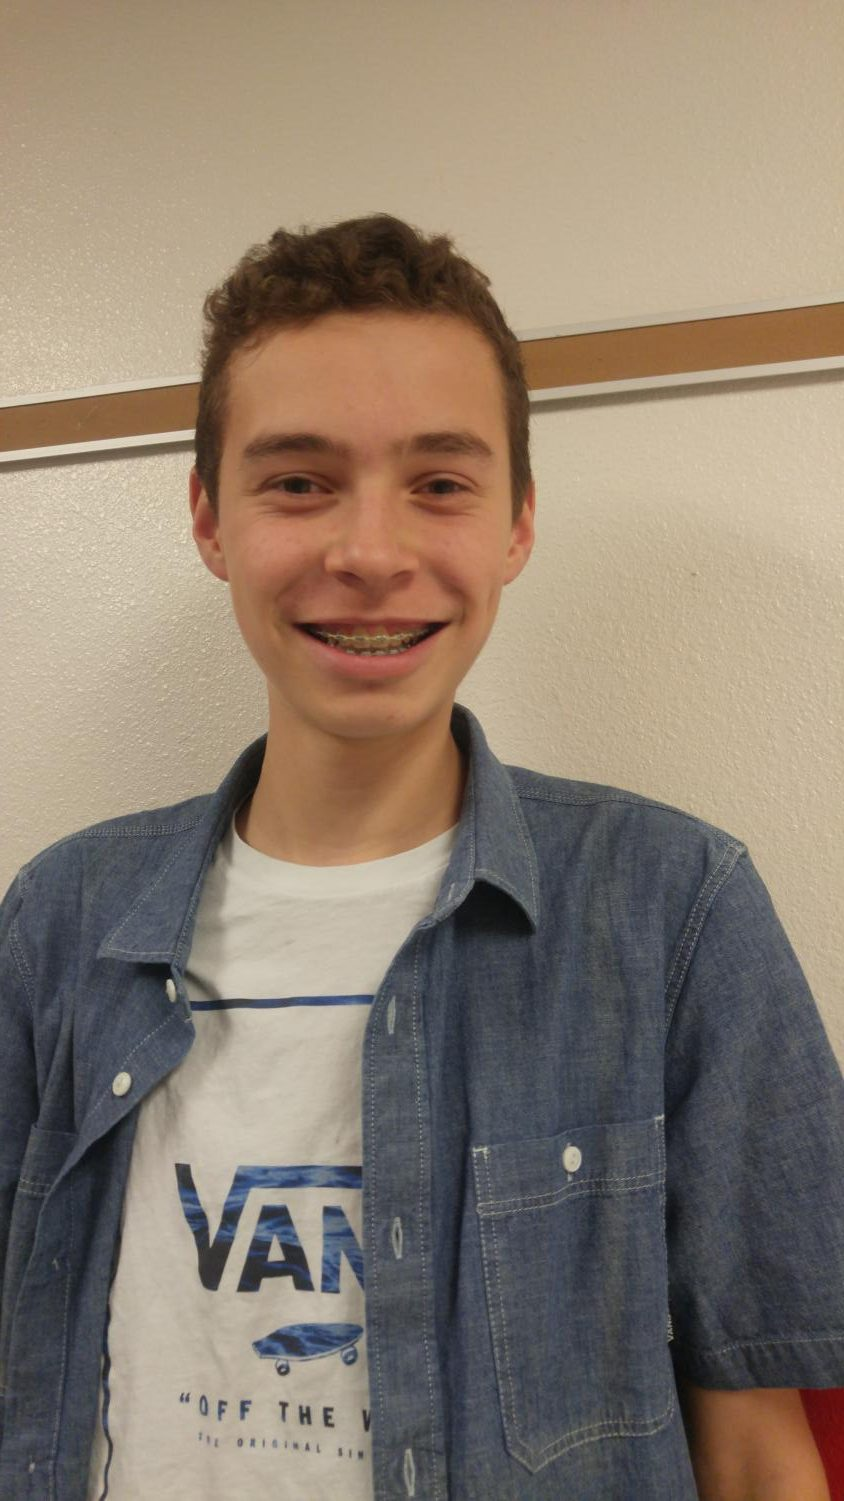 SMILE EVERYDAY- Nicolas Price, a freshman at Highland, says he smiles every day and hardly ever stops smiling!